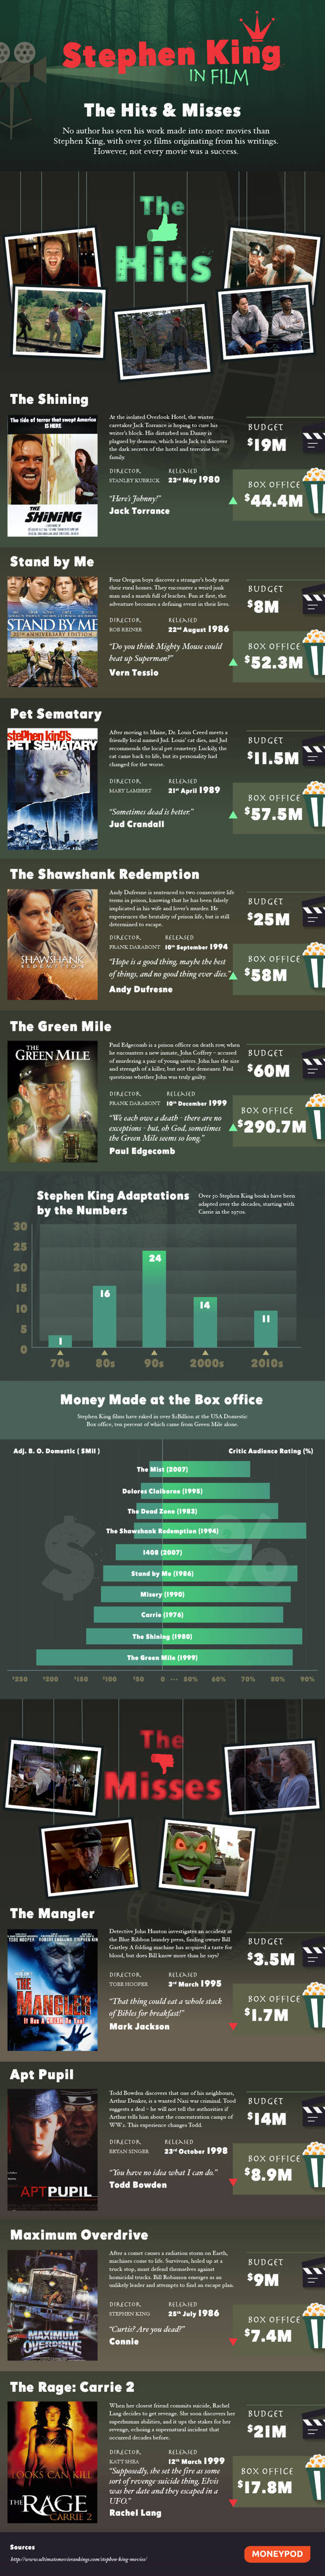 stephen king in film the hits and the misses infographic